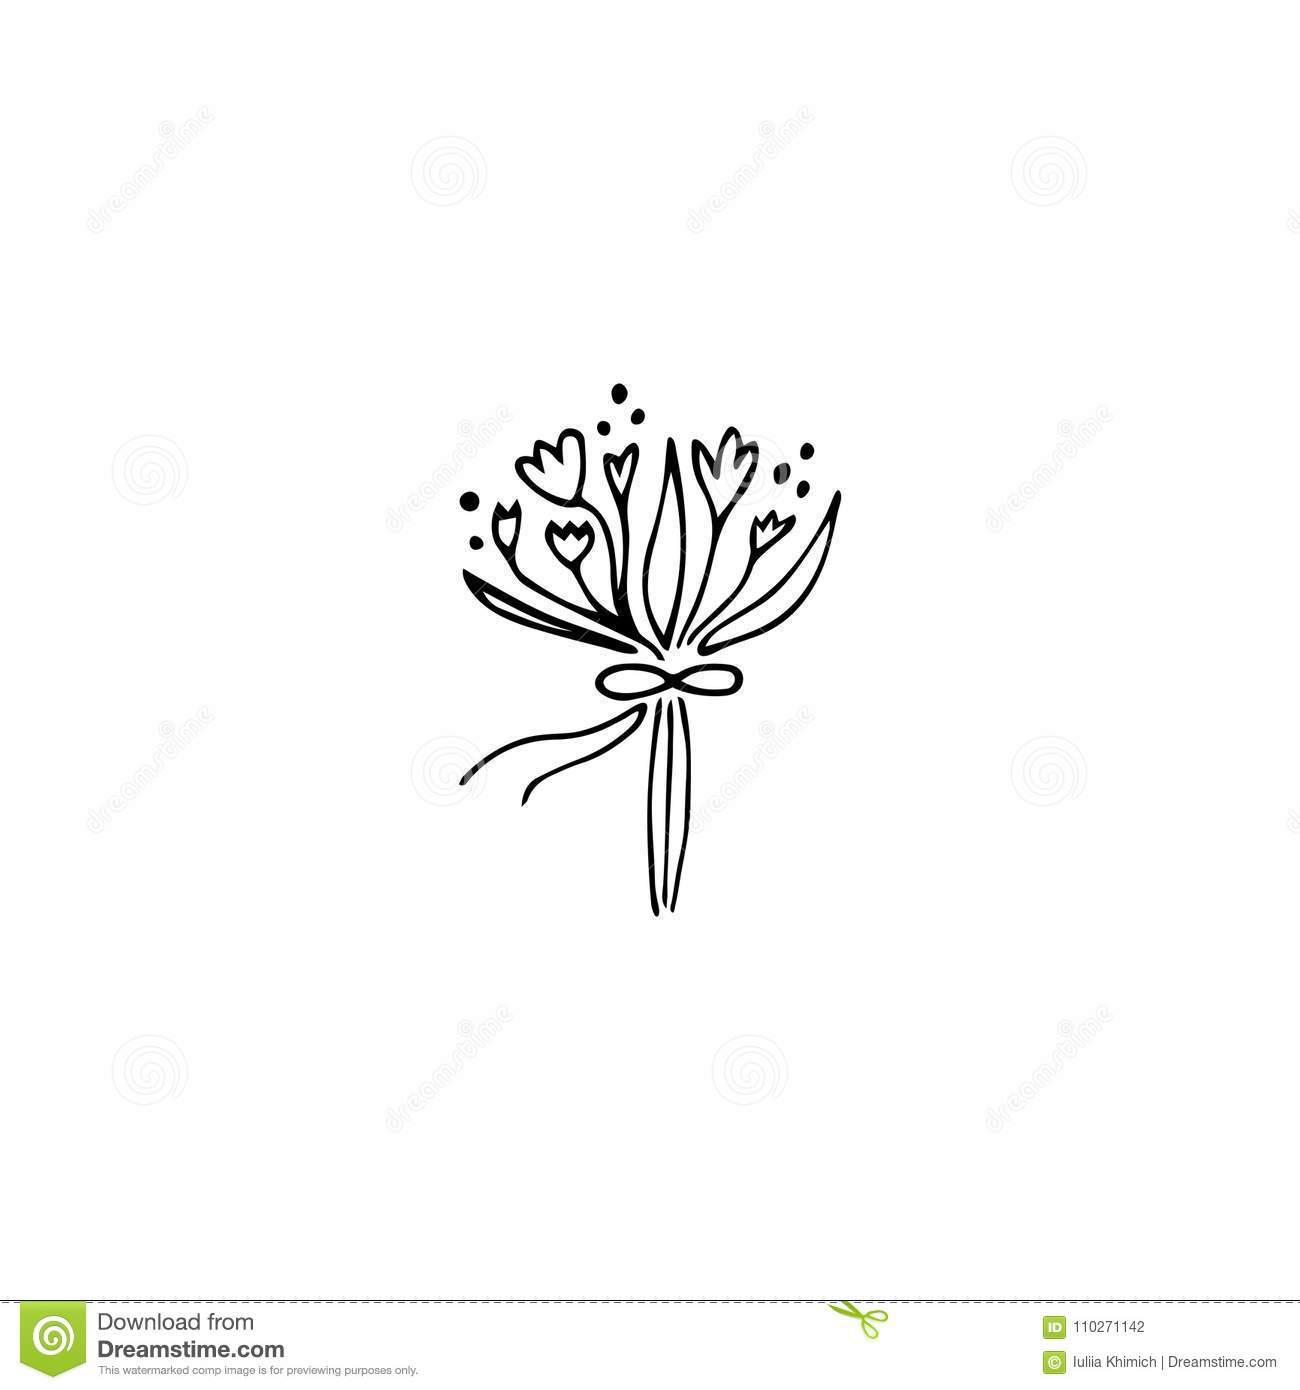 9 Great Places to Download Wedding Clipart for Free | Flower clipart, Wedding  clipart, Flower art